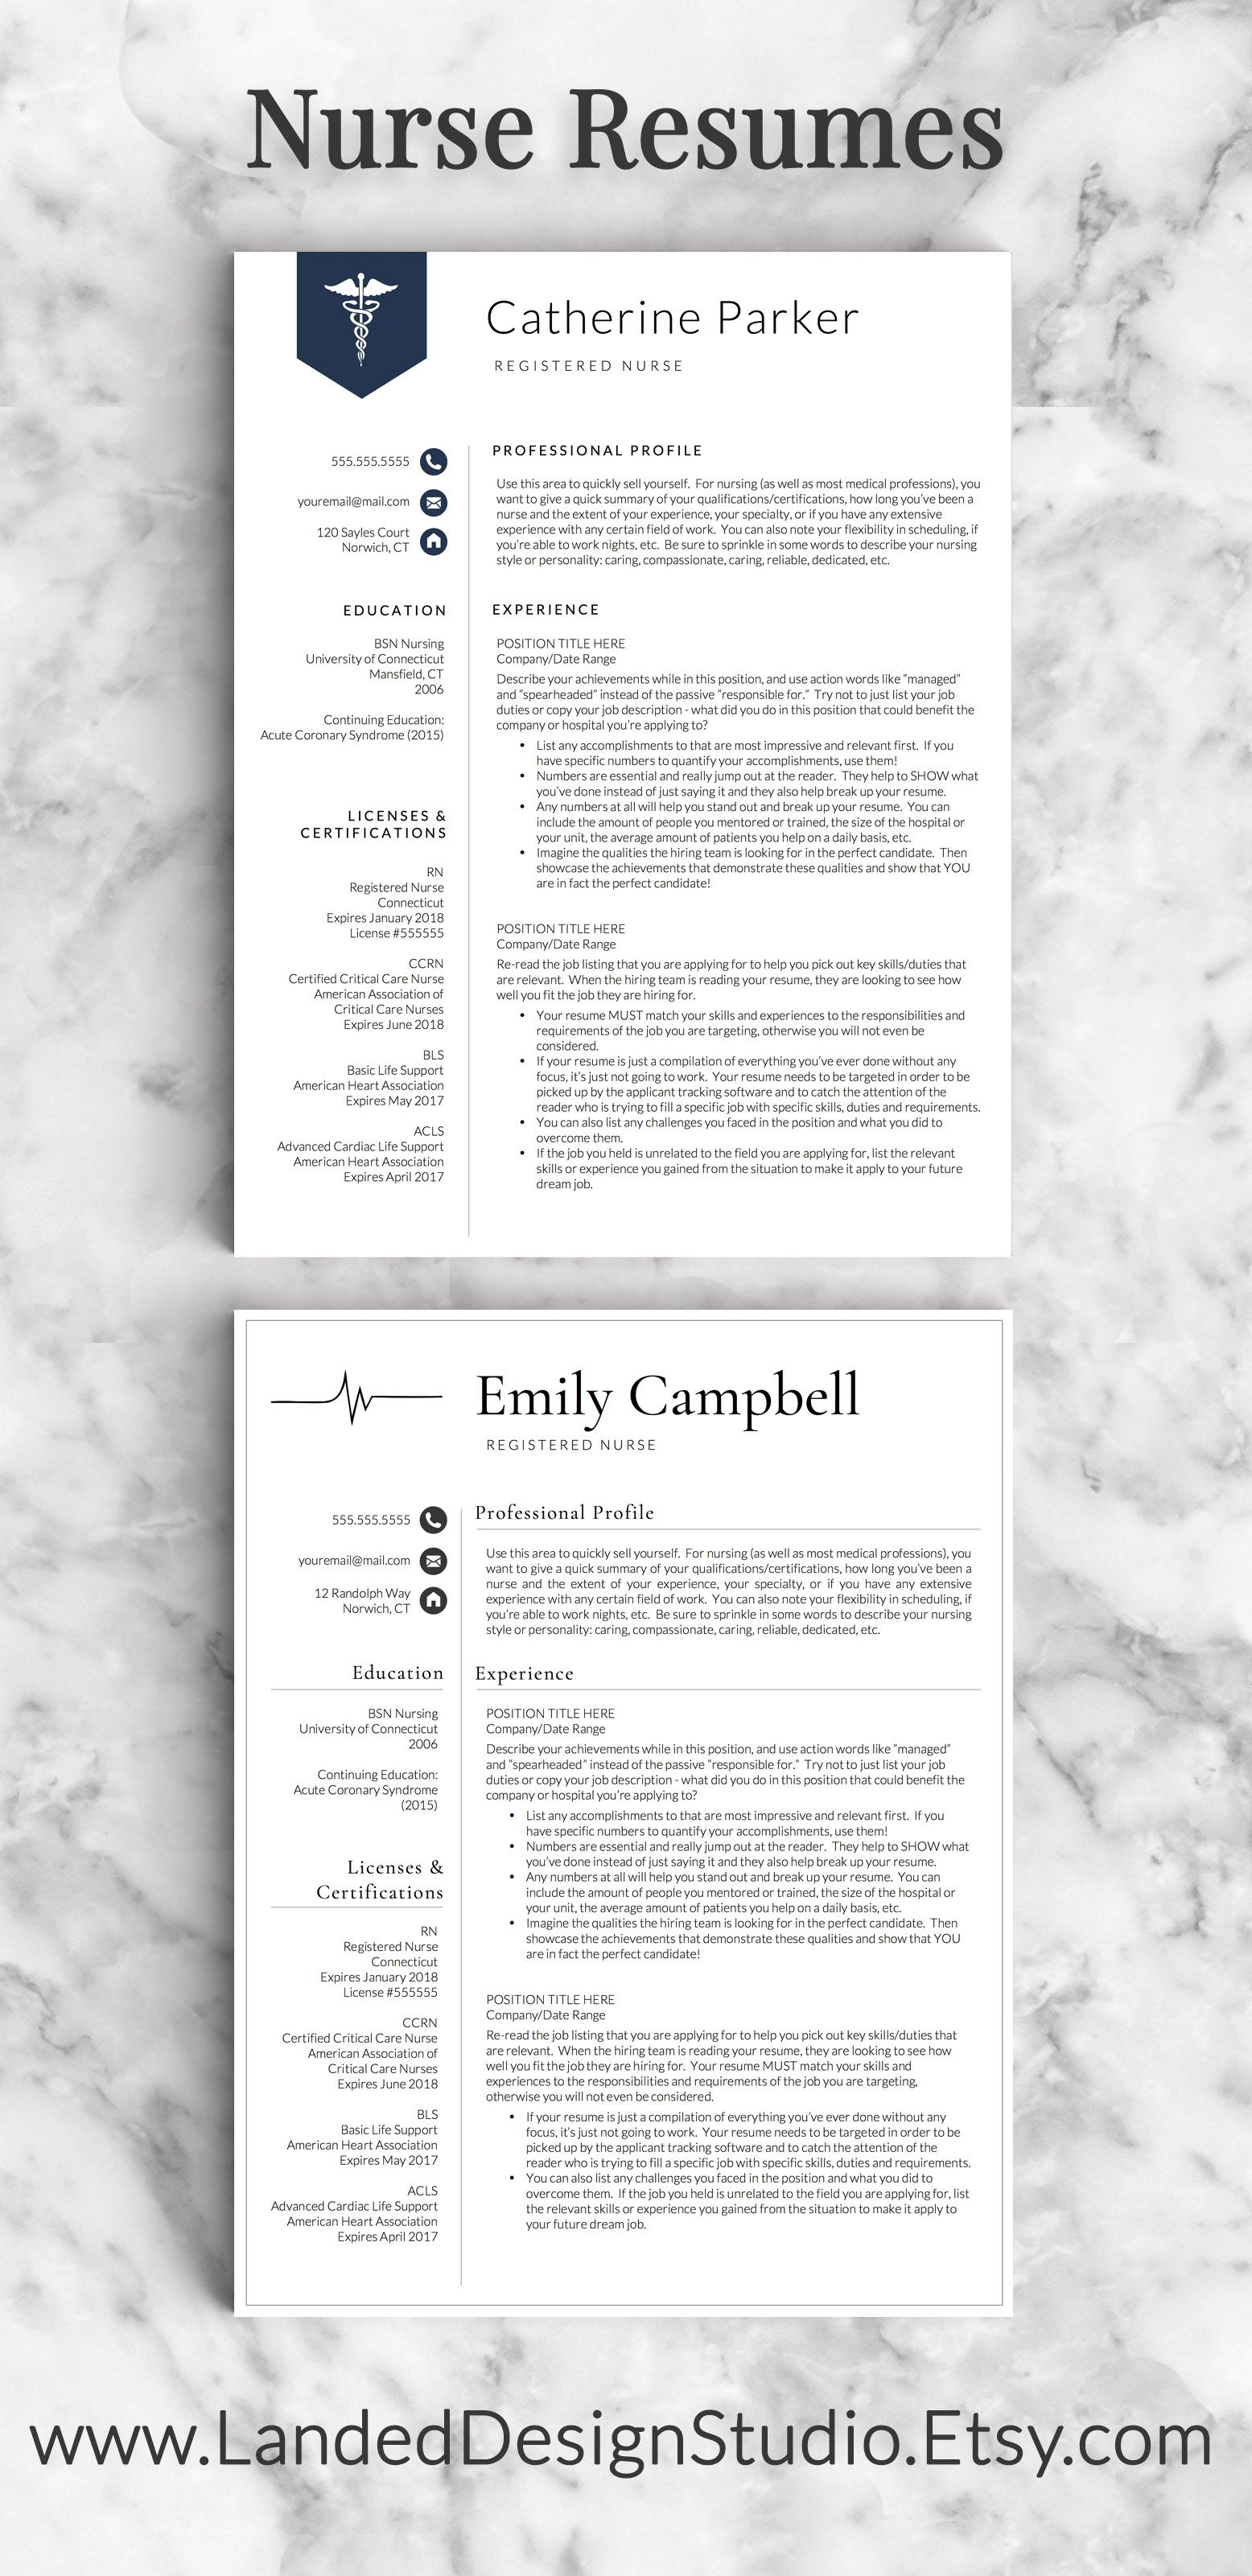 nurse resume templates could be used for any medical profession love the caduceus and the stylized qrs wave